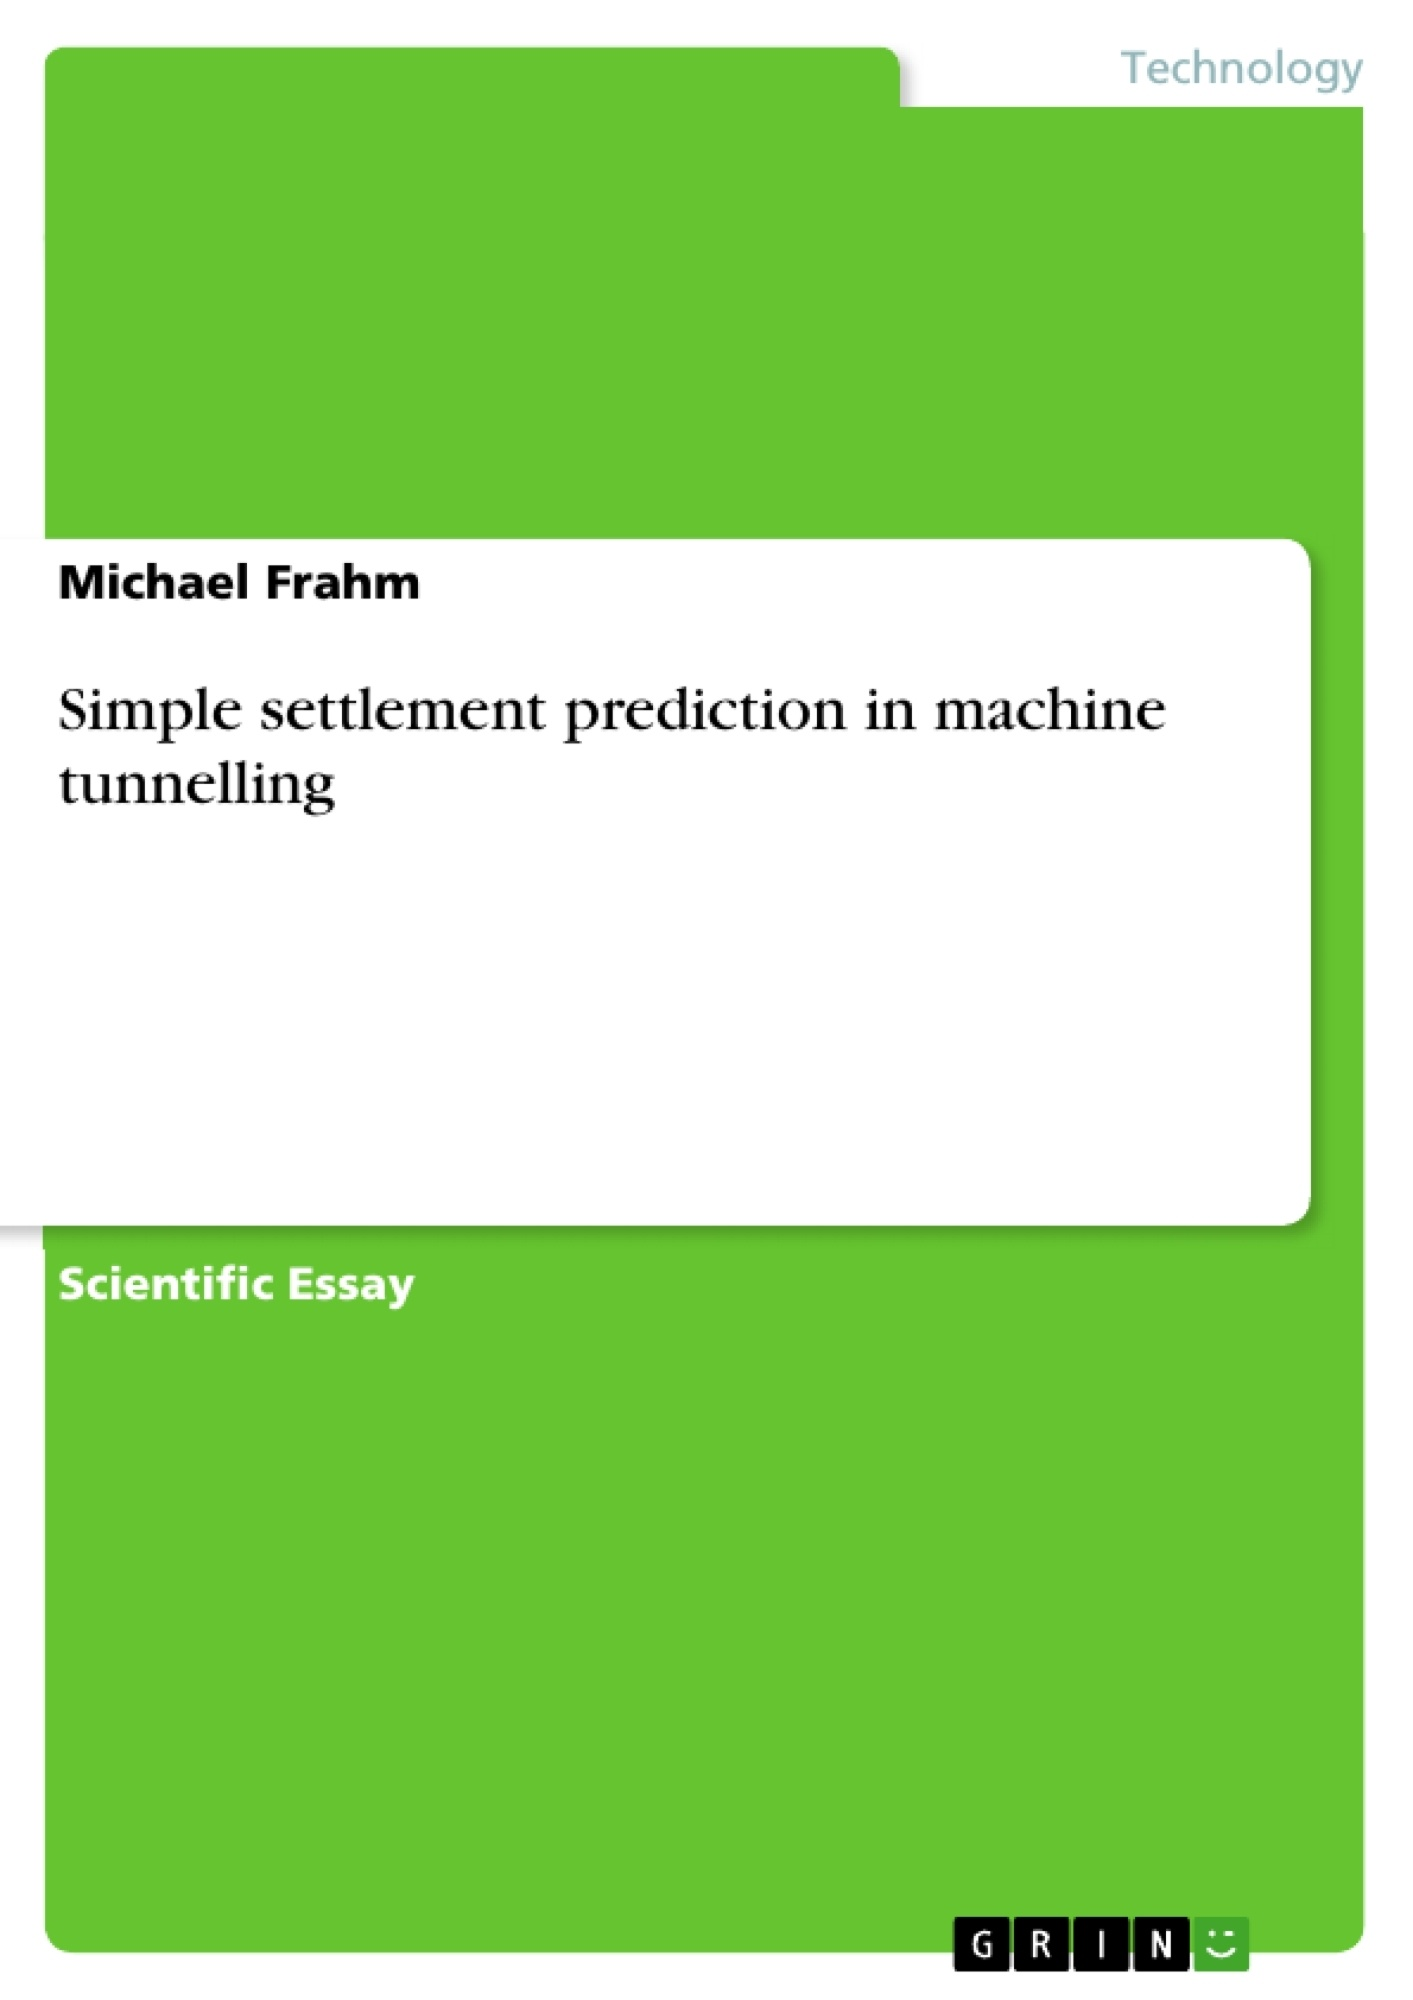 Title: Simple settlement prediction in machine tunnelling